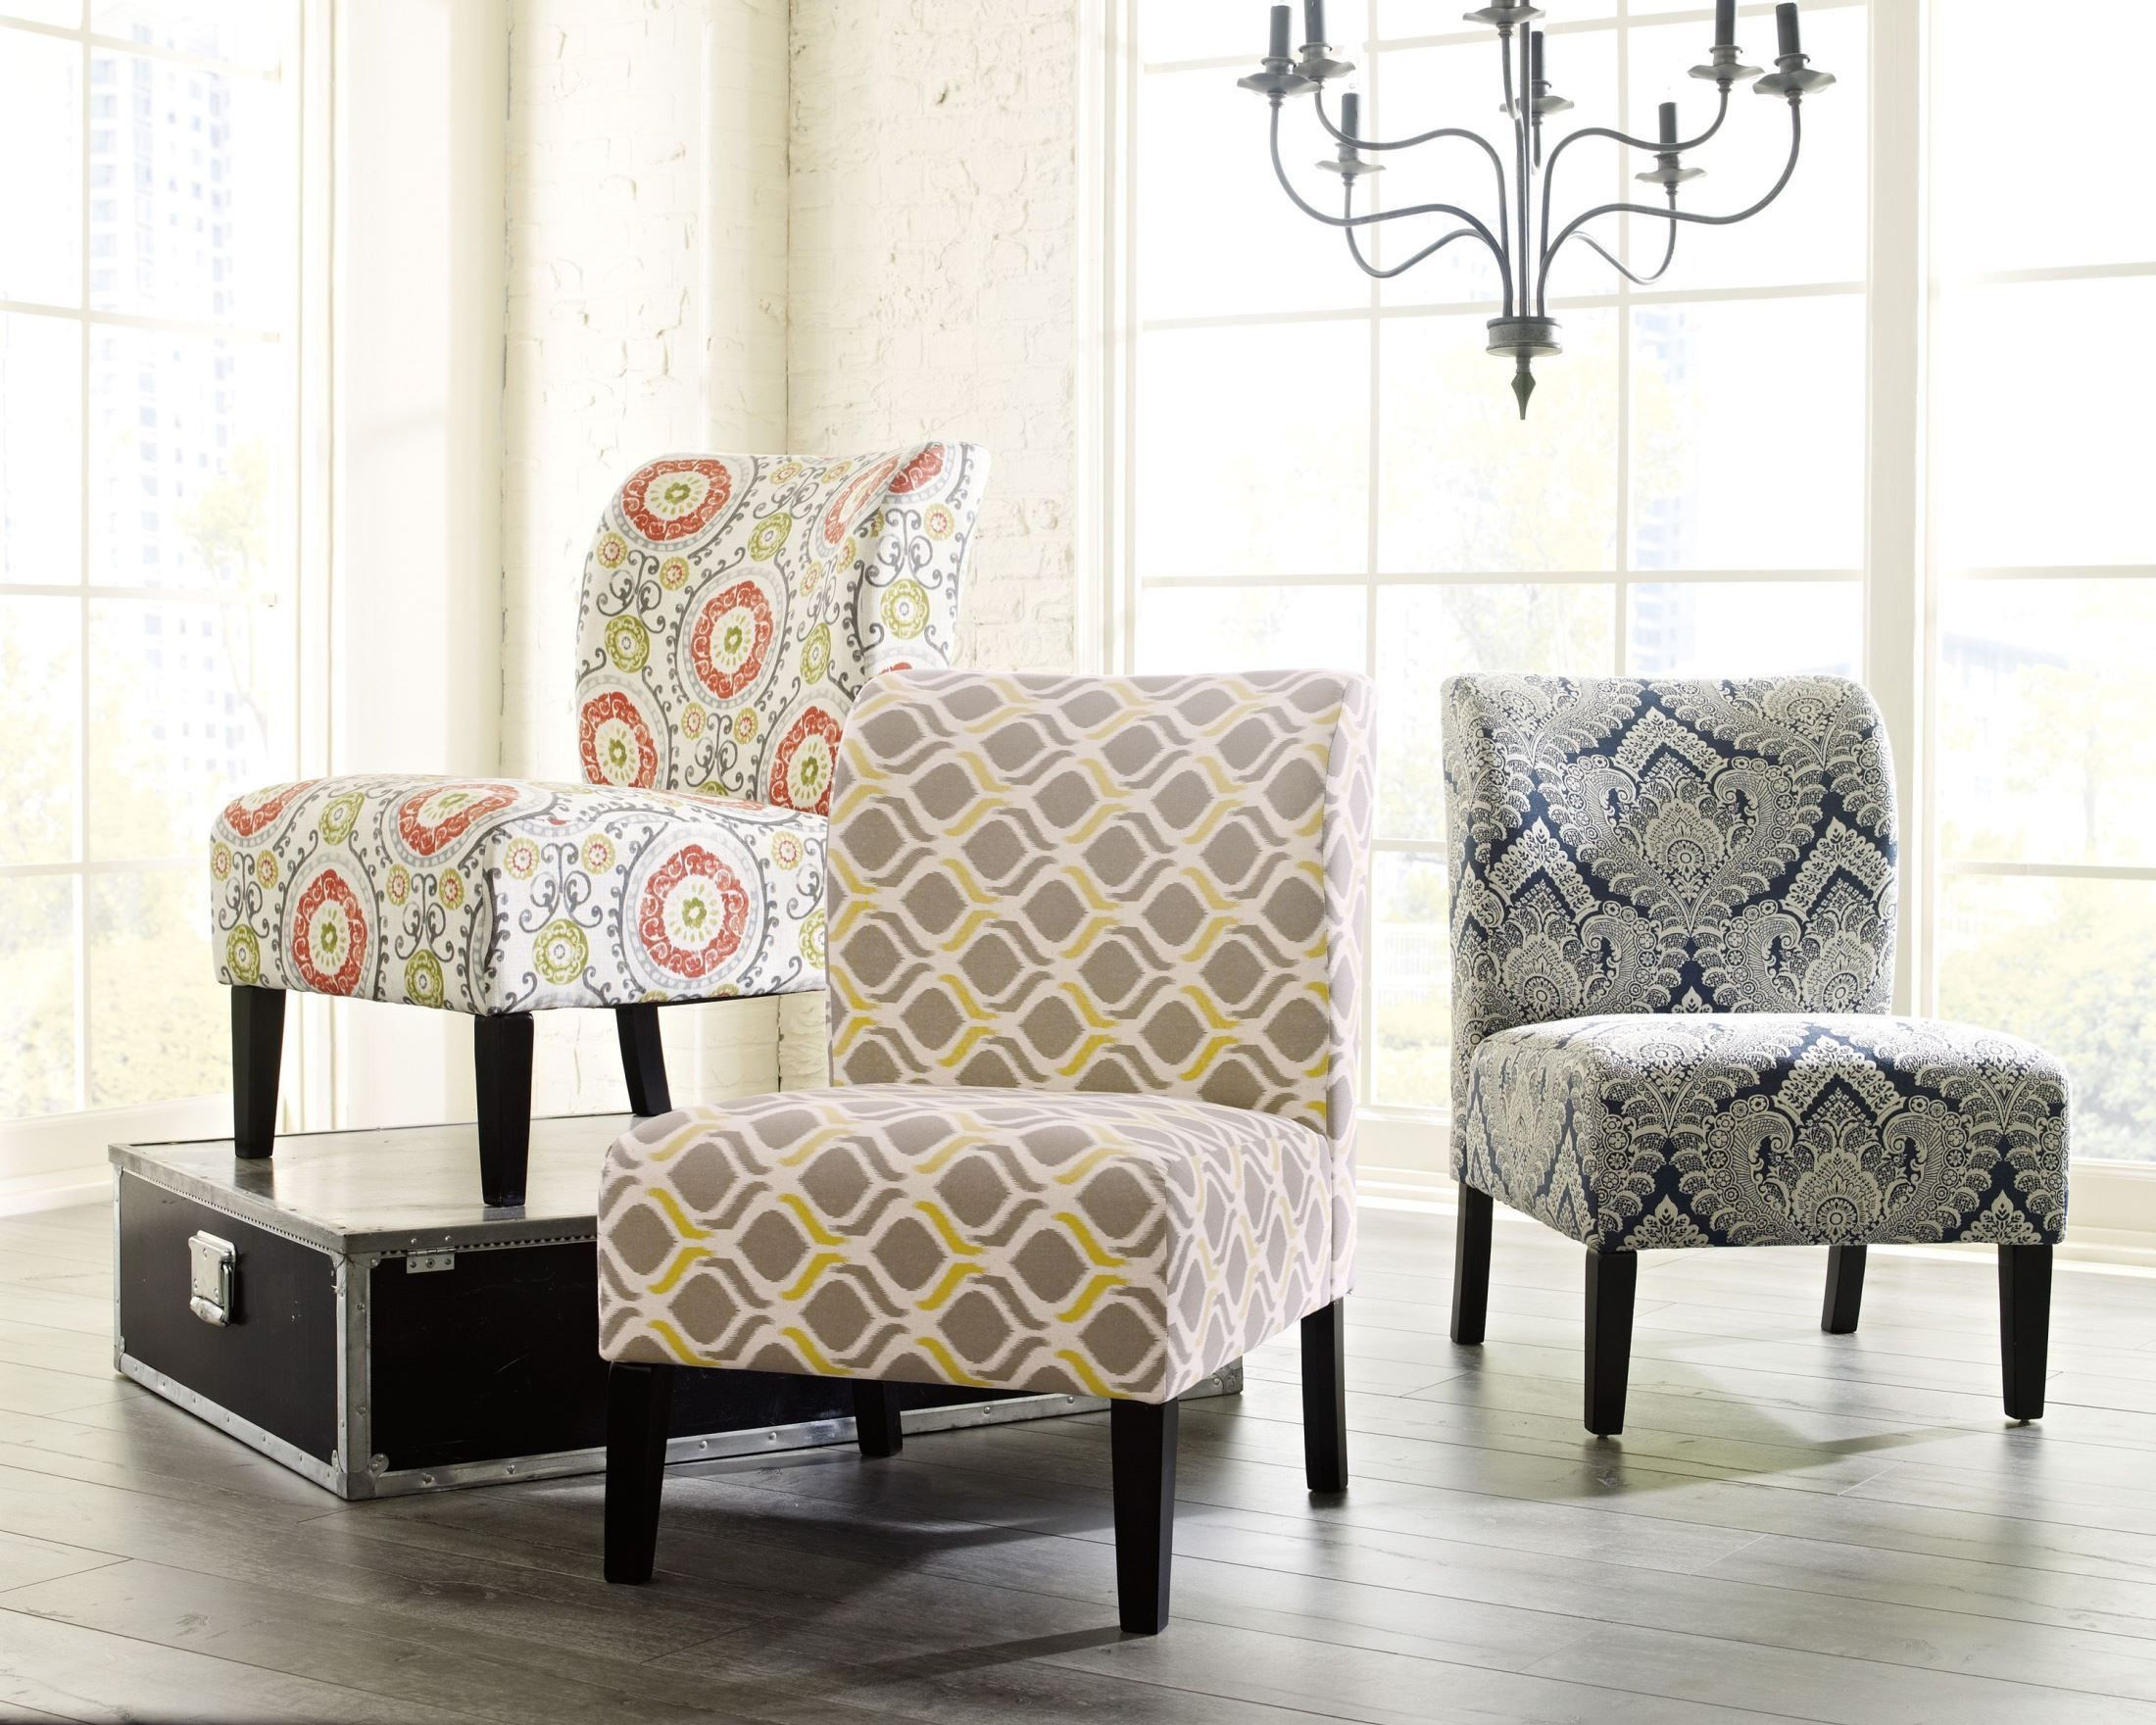 Honnally Floral Accent Chair From Ashley 5330260